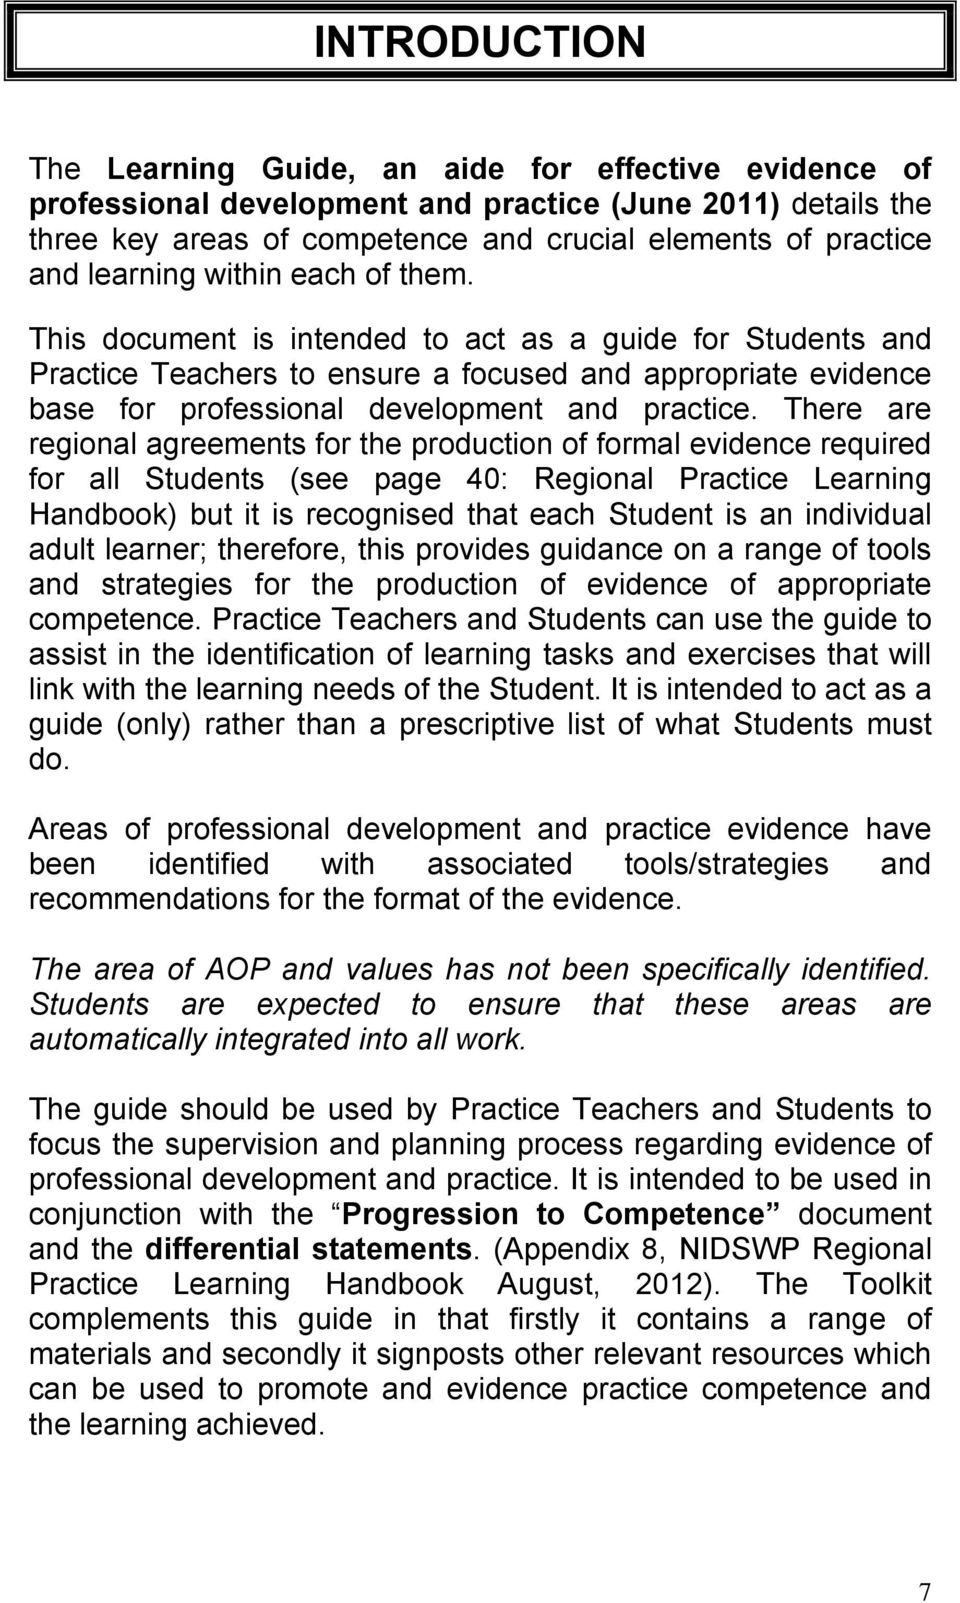 This document is intended to act as a guide for Students and Practice Teachers to ensure a focused and appropriate evidence base for professional development and practice.